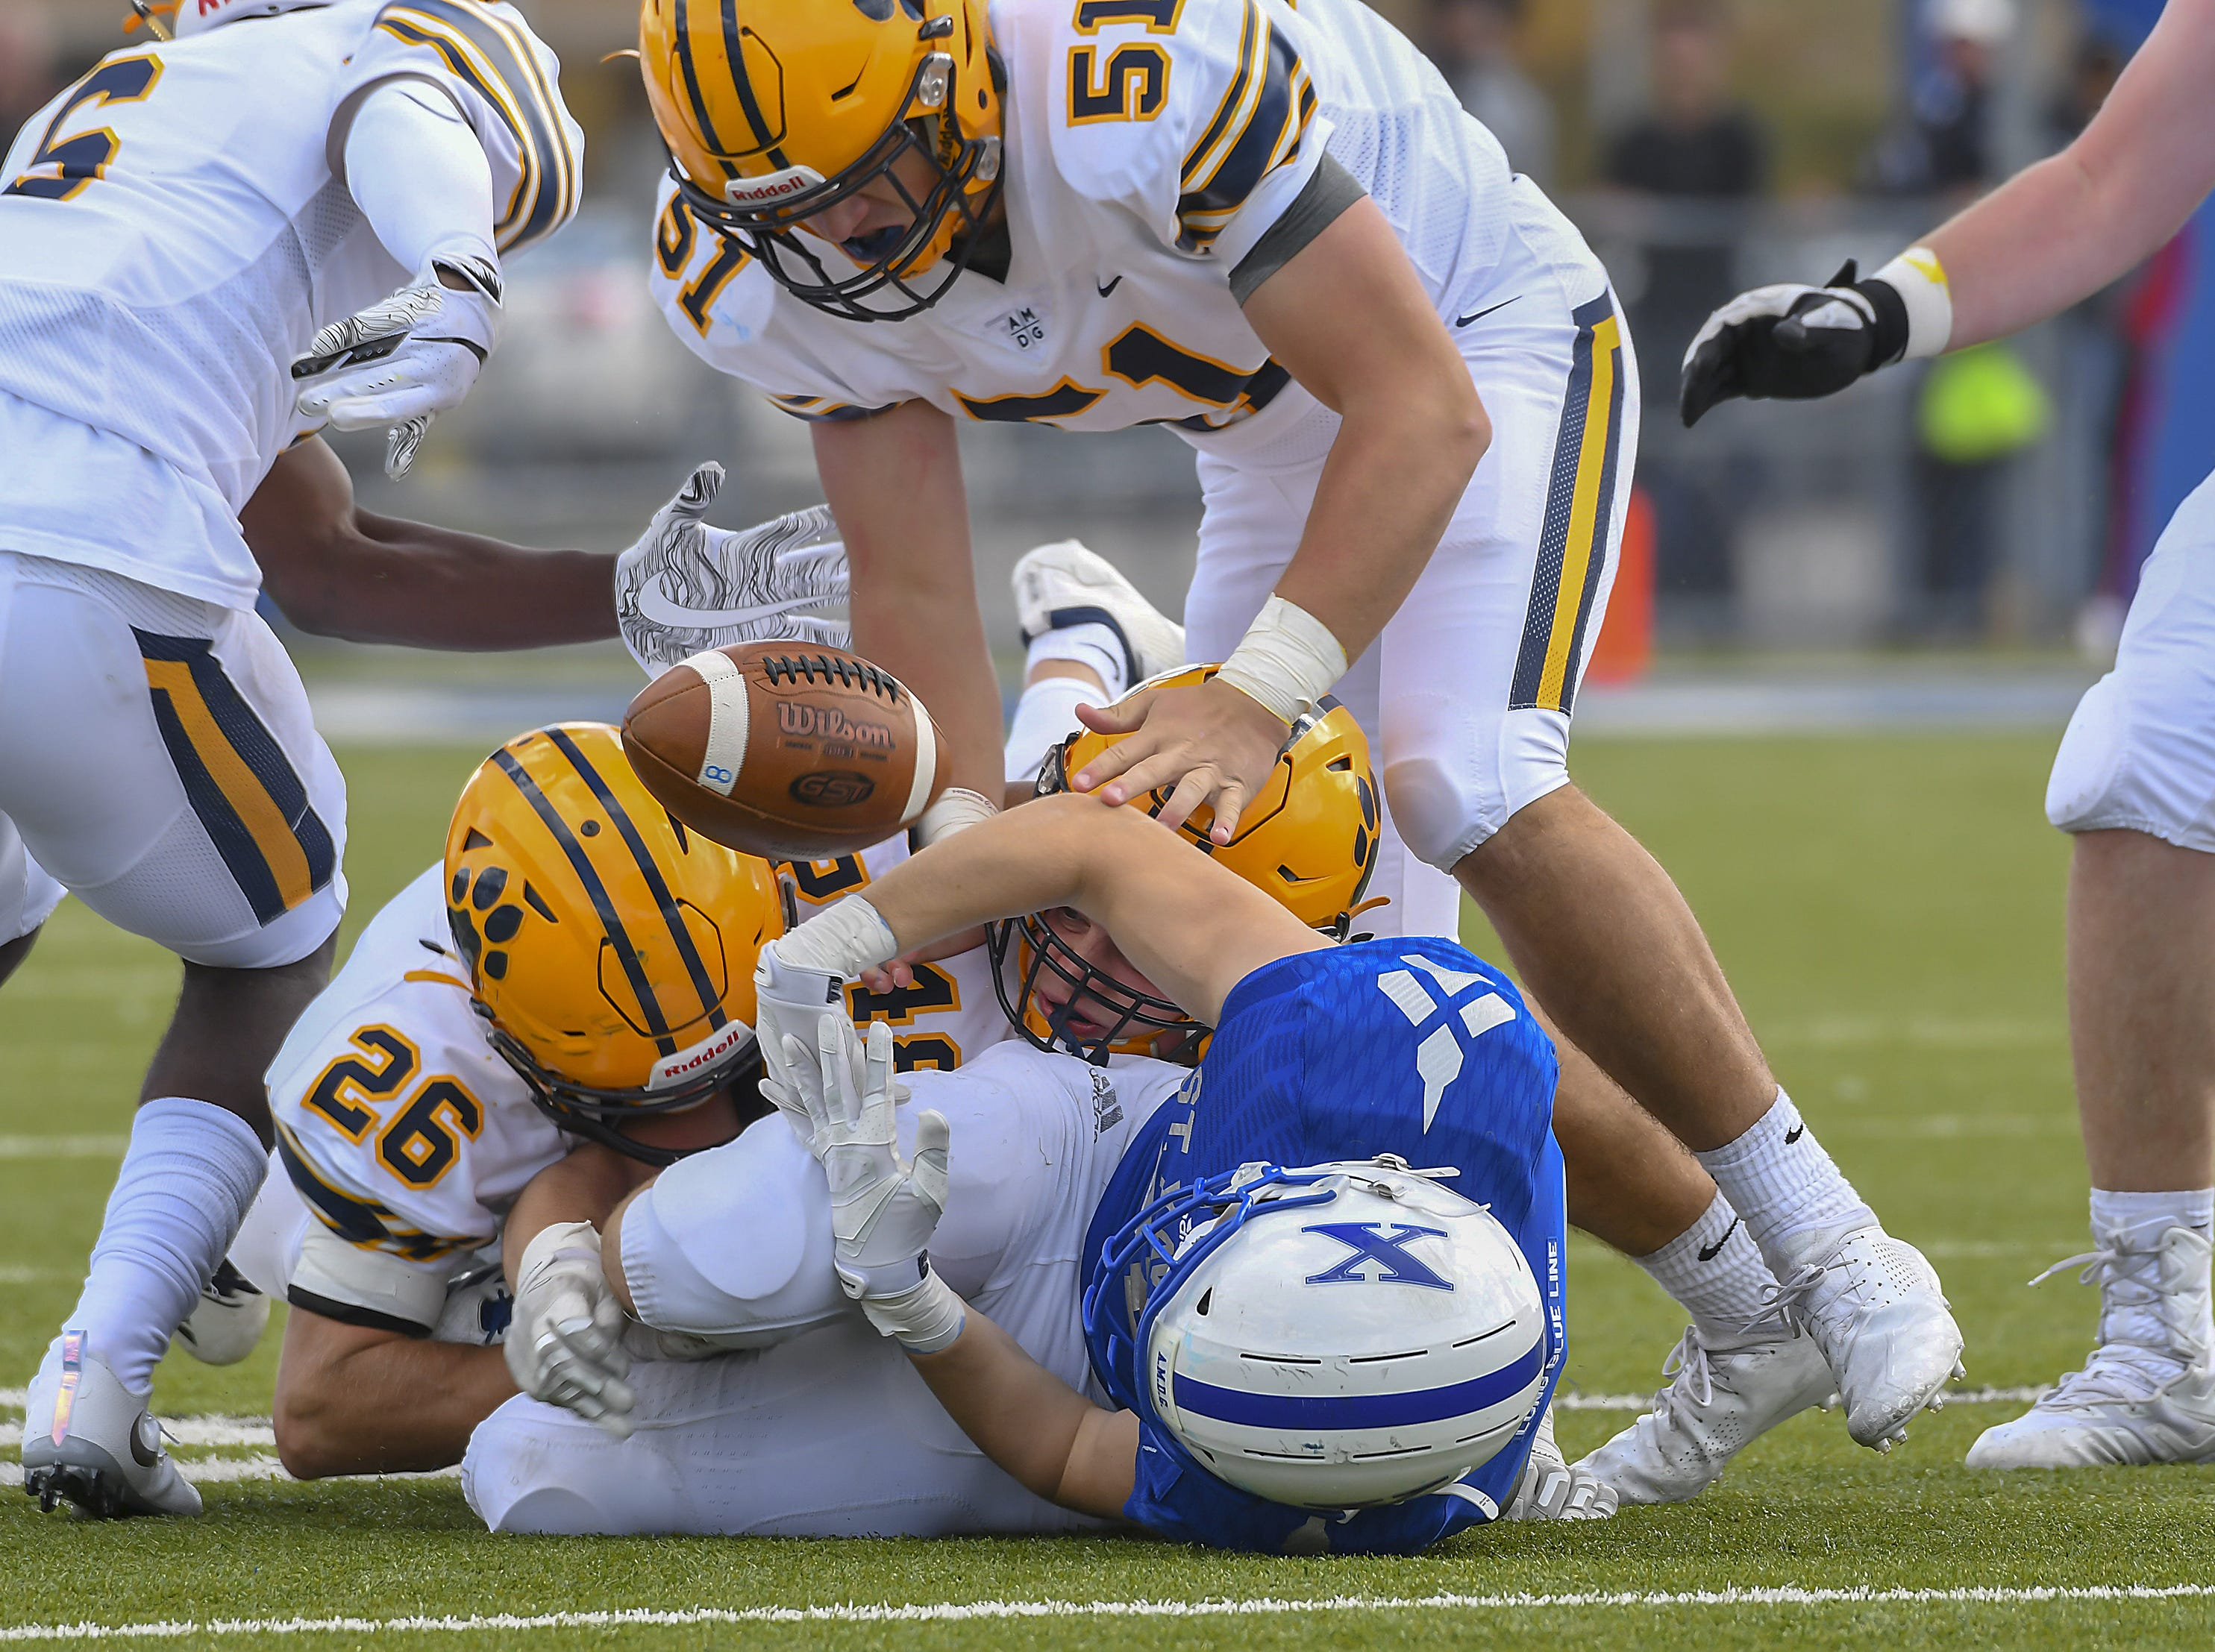 St. X receiver Patrick McIntyre fumbles the ball against St. Ignatius at St. Xavier High School, Saturday, October, 20 2018